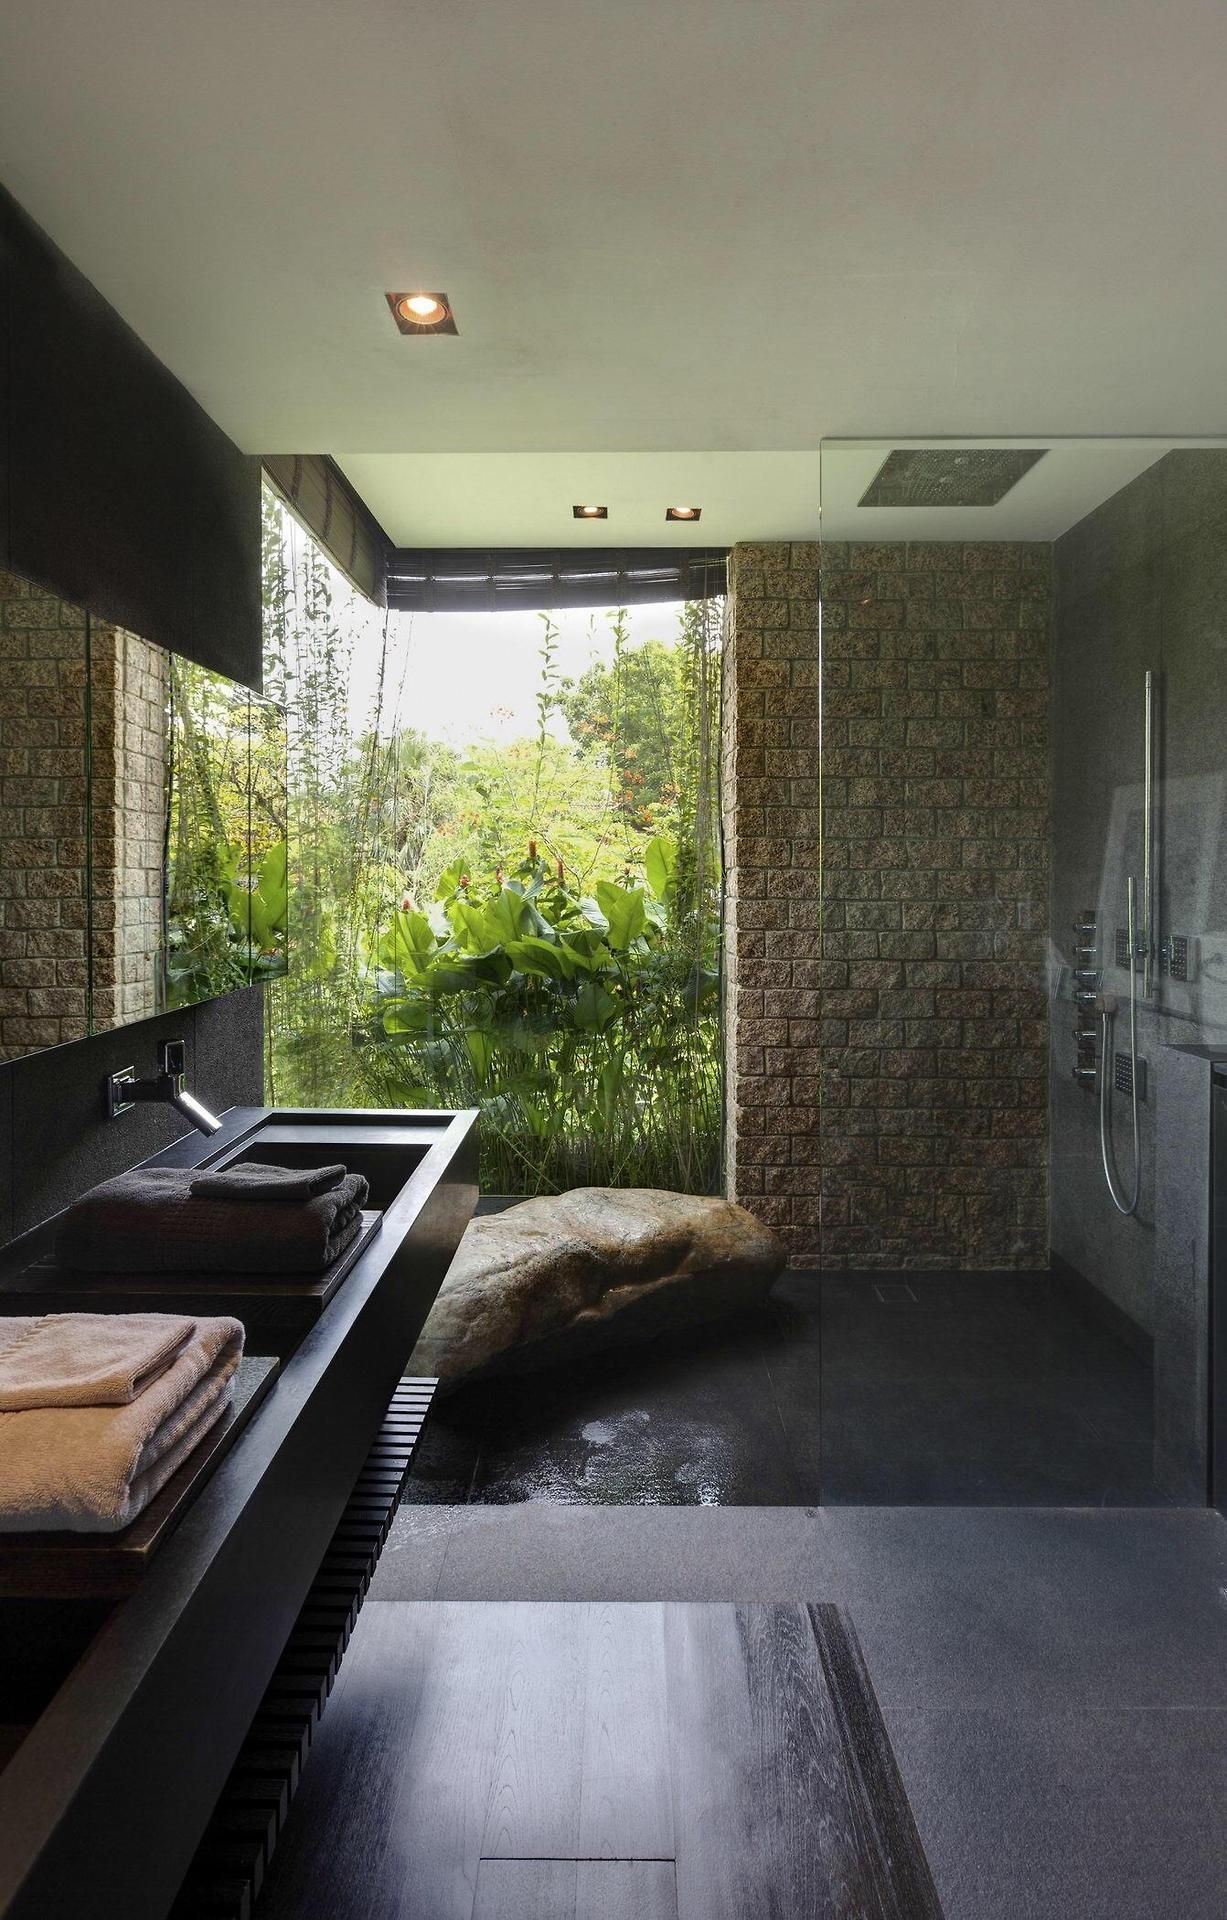 Home Interior Design — Bathroom features a large window with garden ...